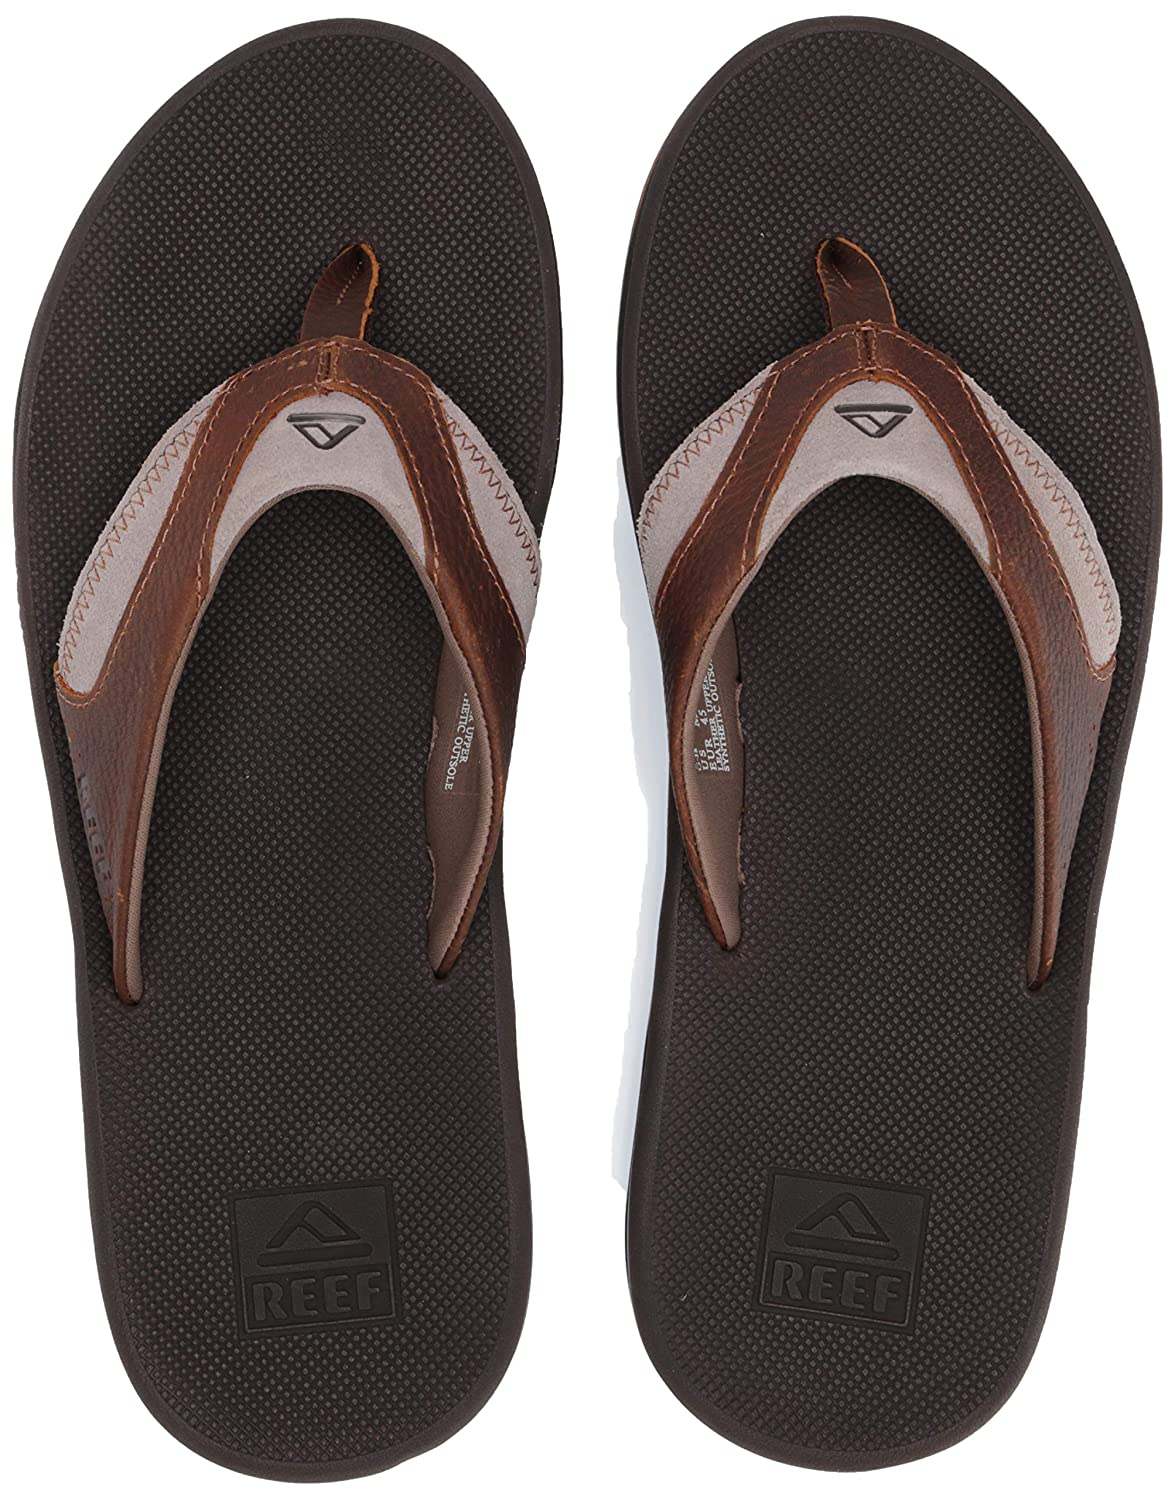 Reef Leather Fanning, Chanclas para Hombre, Marrón (Bro/Brown 4 Br4), 40 EU